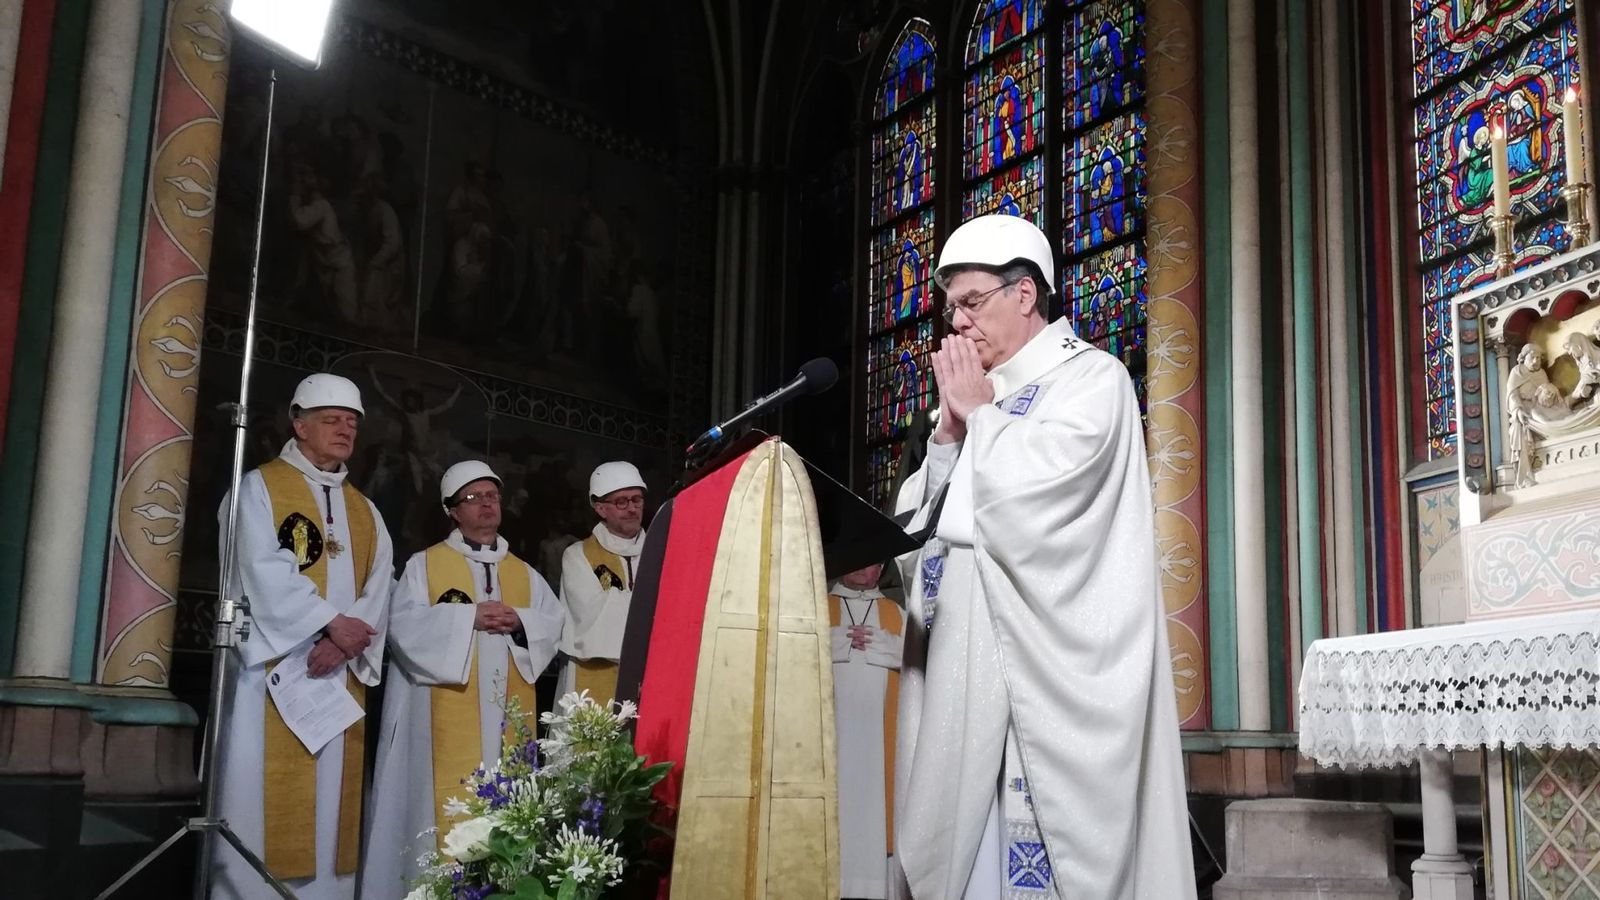 The Archbishop of Paris Michel Aupetit leads the first mass in a side chapel two months to the day after a devastating fire engulfed the Notre-Dame de Paris cathedral on June 15, 2019, in Paris. - The Notre-Dame cathedral in Paris will host its first mass on June 15, 2019, exactly two months after the devastating blaze that shocked France and the world. For safety reasons, the mass led by Archbishop of Paris Michel Aupetit will be celebrated on a very small scale. Worshippers will be expected to